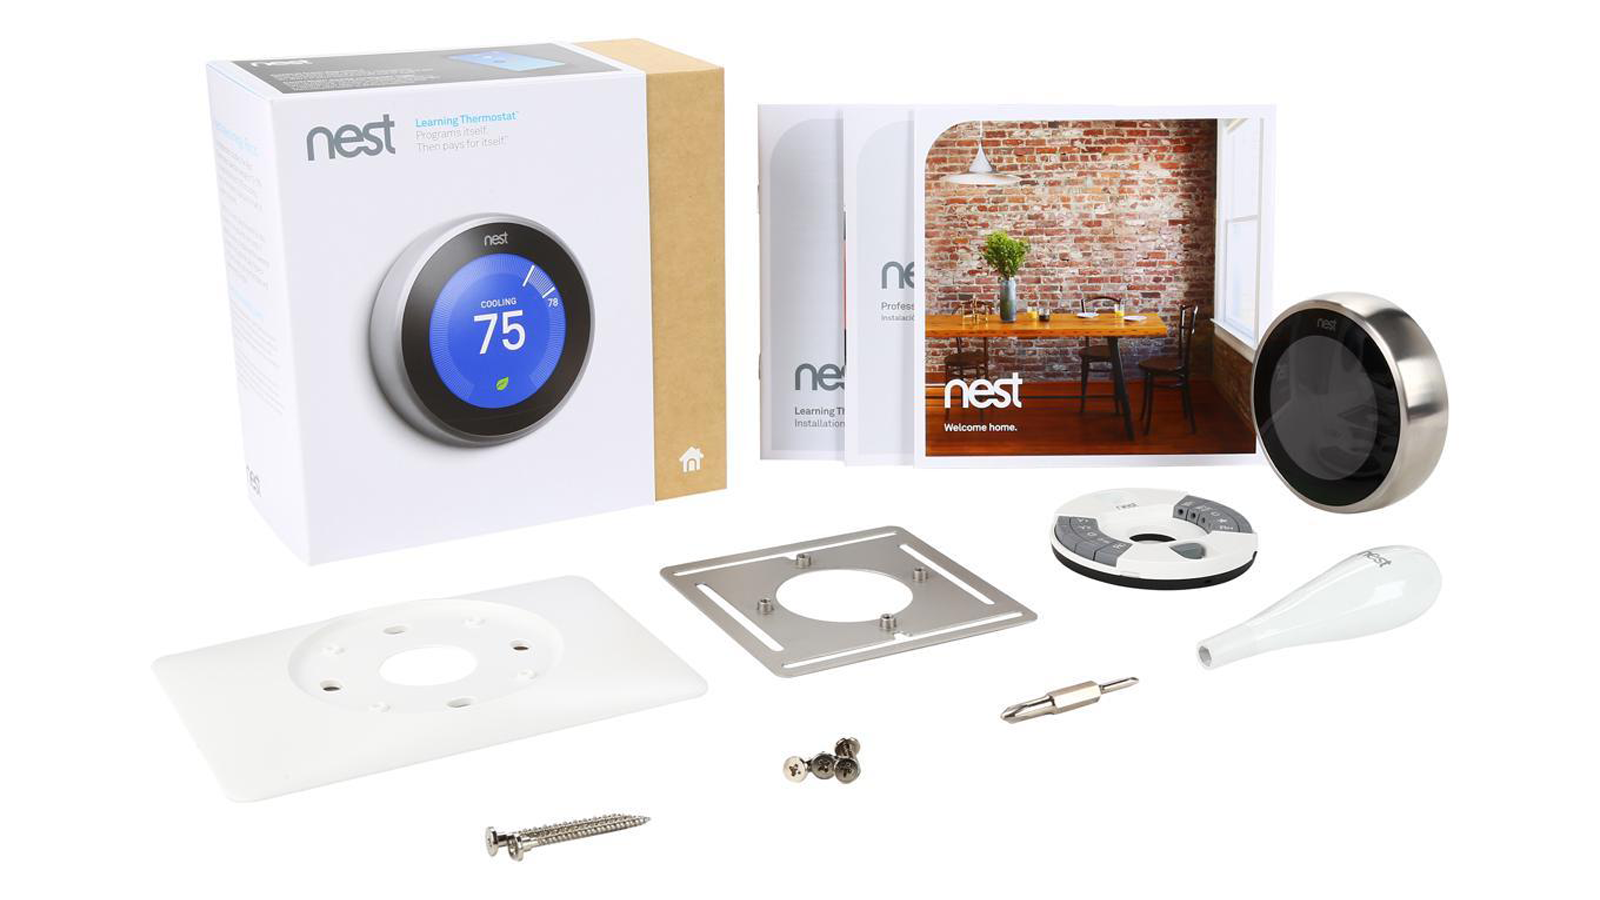 Nest Learning Thermostat is the best programmable thermostat for regulating air conditioning during the summer